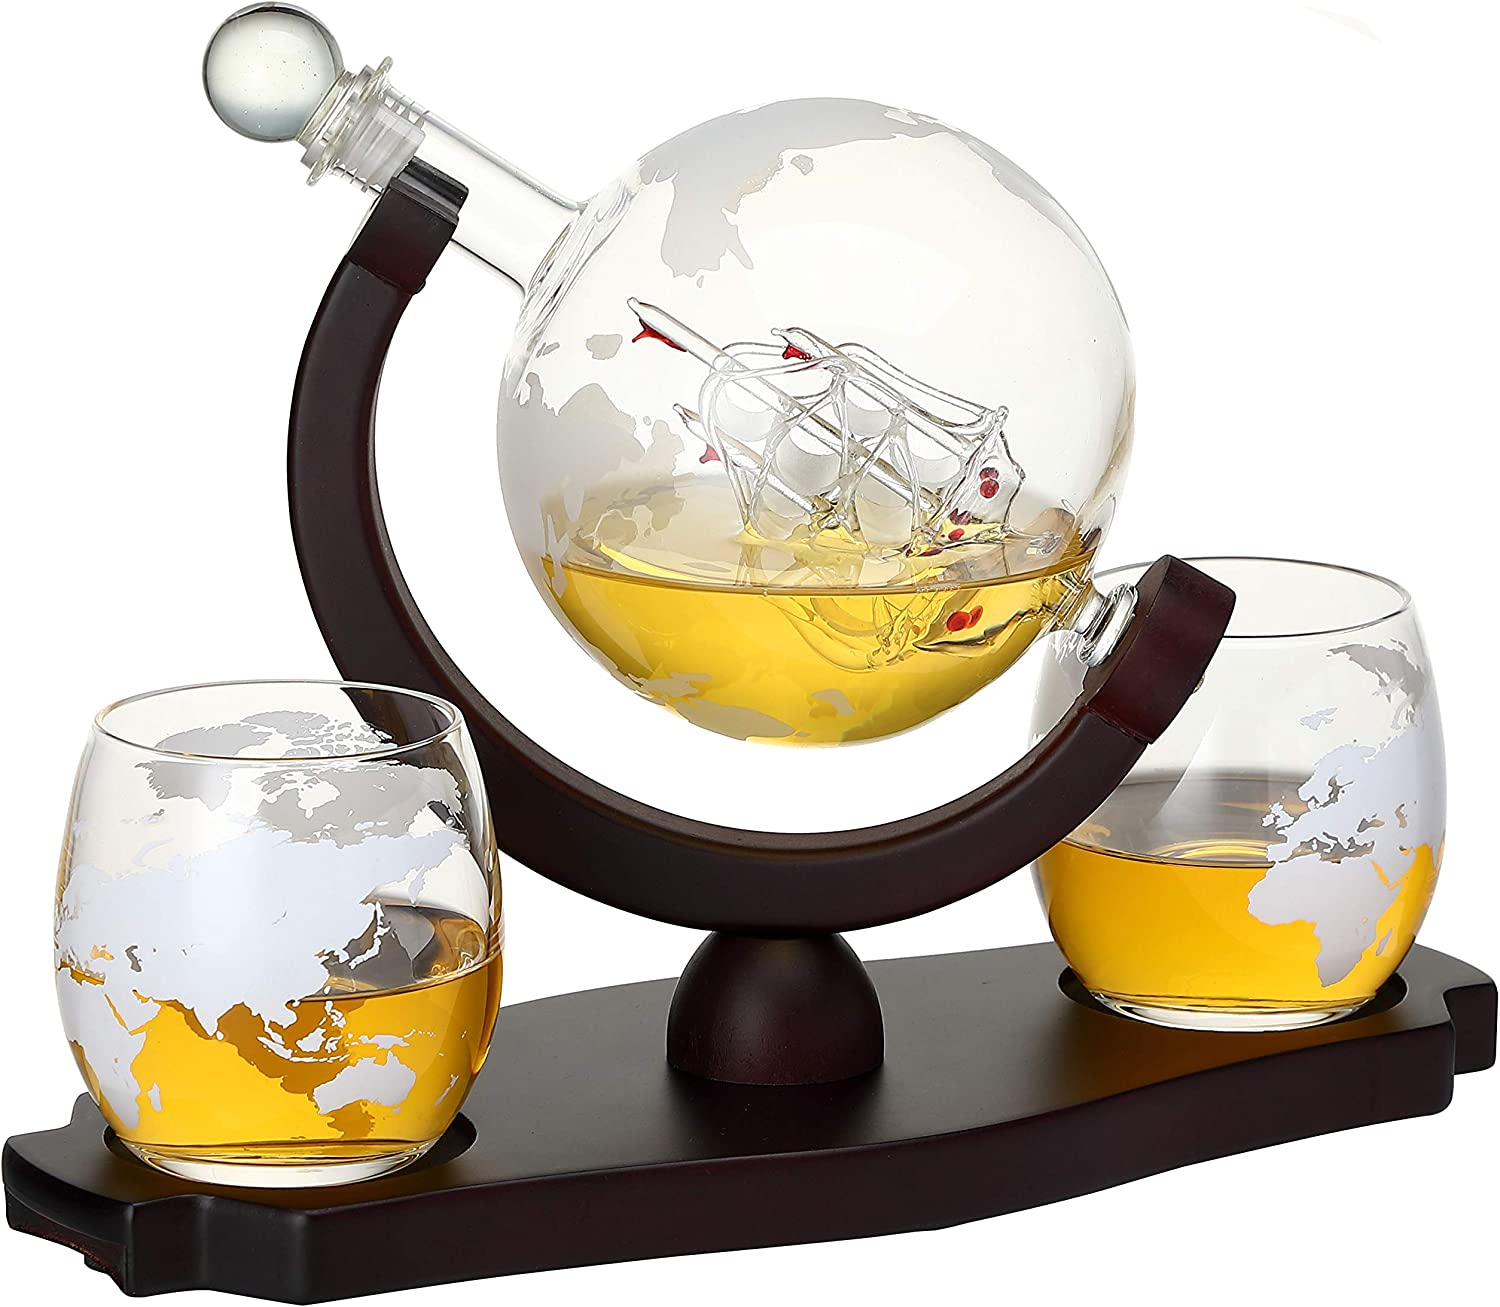 Verolux Whiskey Japan's largest assortment Globe online shop Decanter Set i with Etched Glasses 2